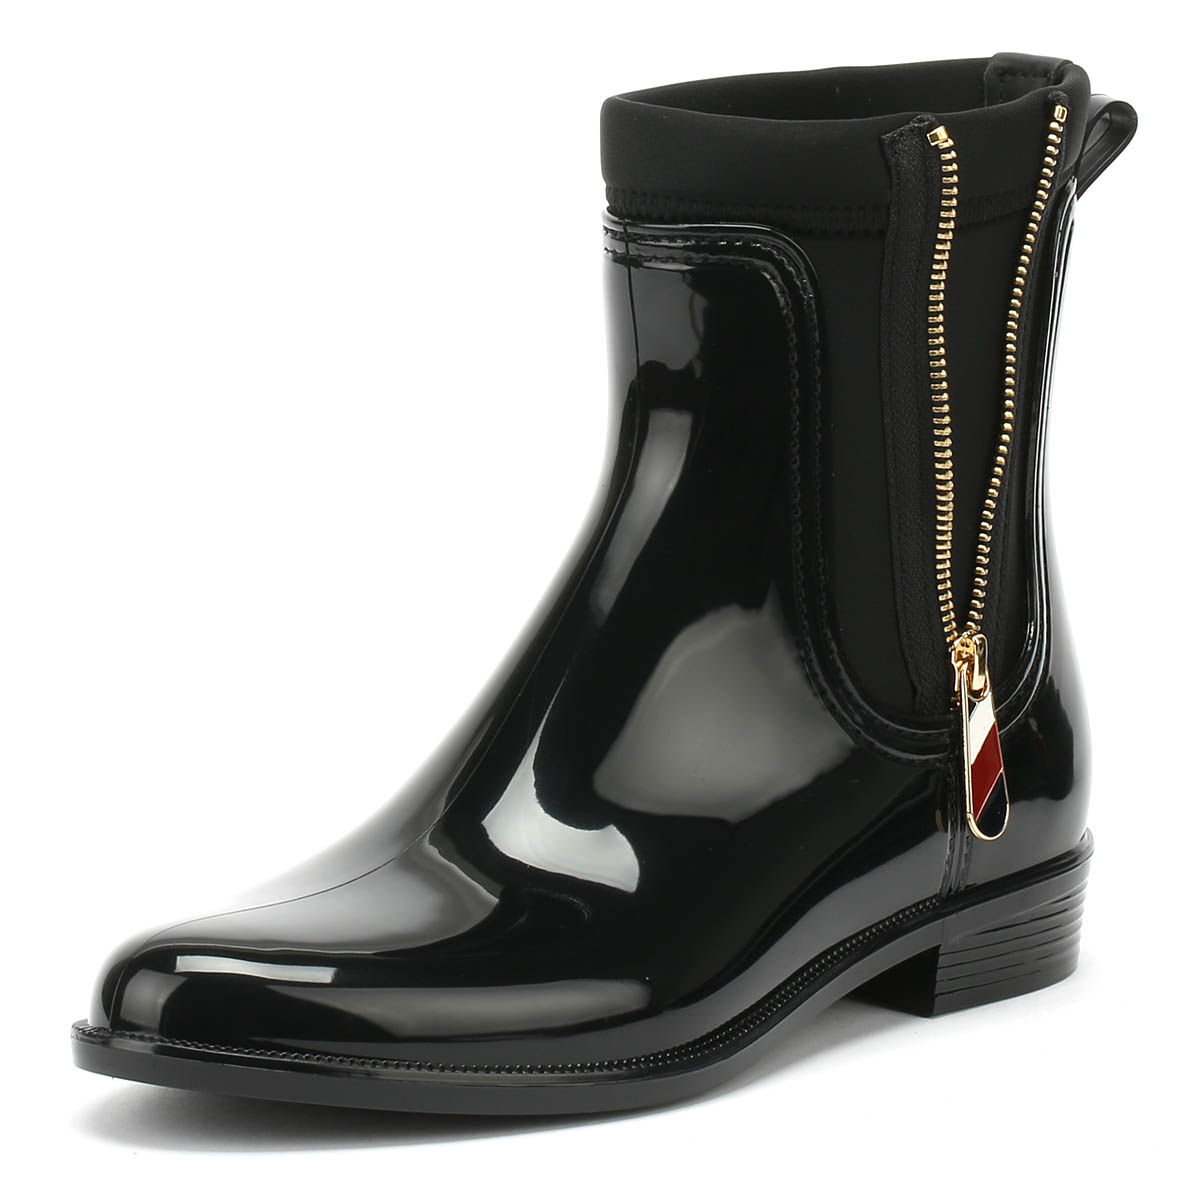 6e642a32a8468d Details about Tommy Hilfiger Womens Rain Boots Black Material Mix Zipped  Casual Ankle Shoes